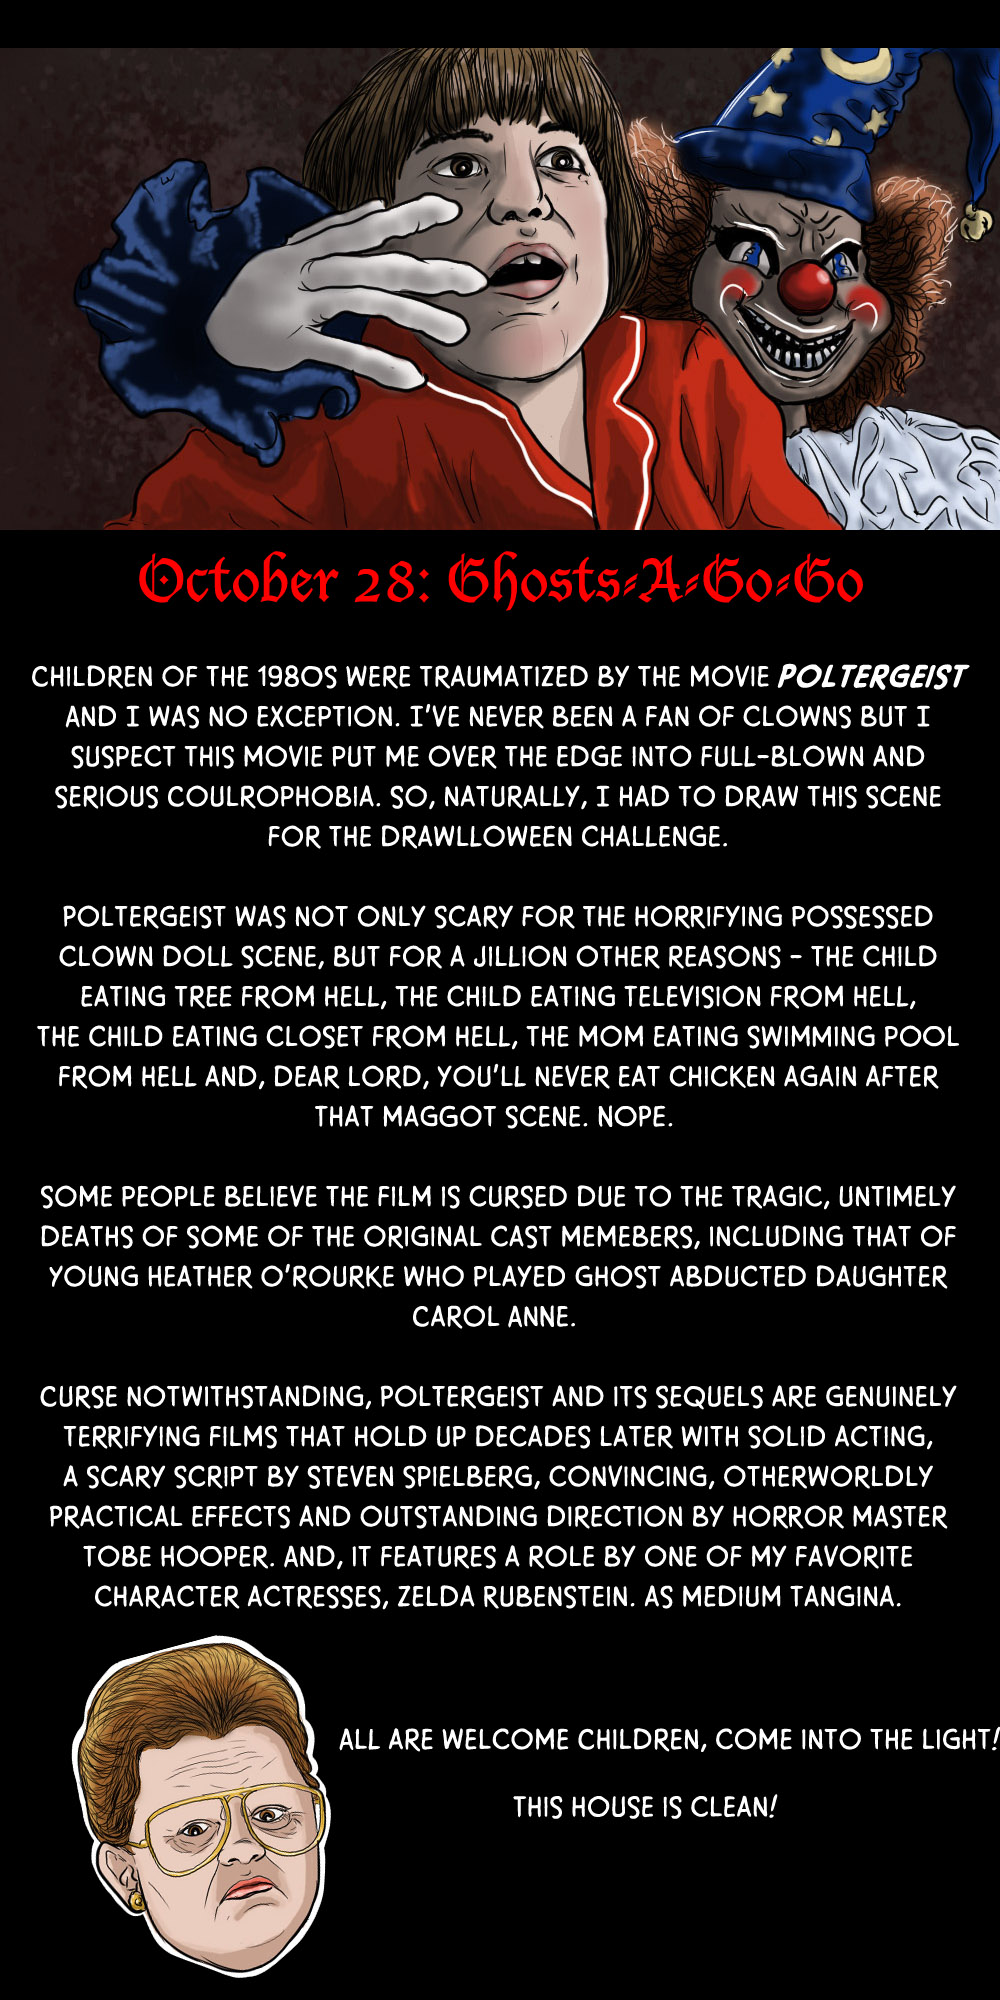 October 28: Ghosts-A-Go-Go! (And a Poltergeist as well)